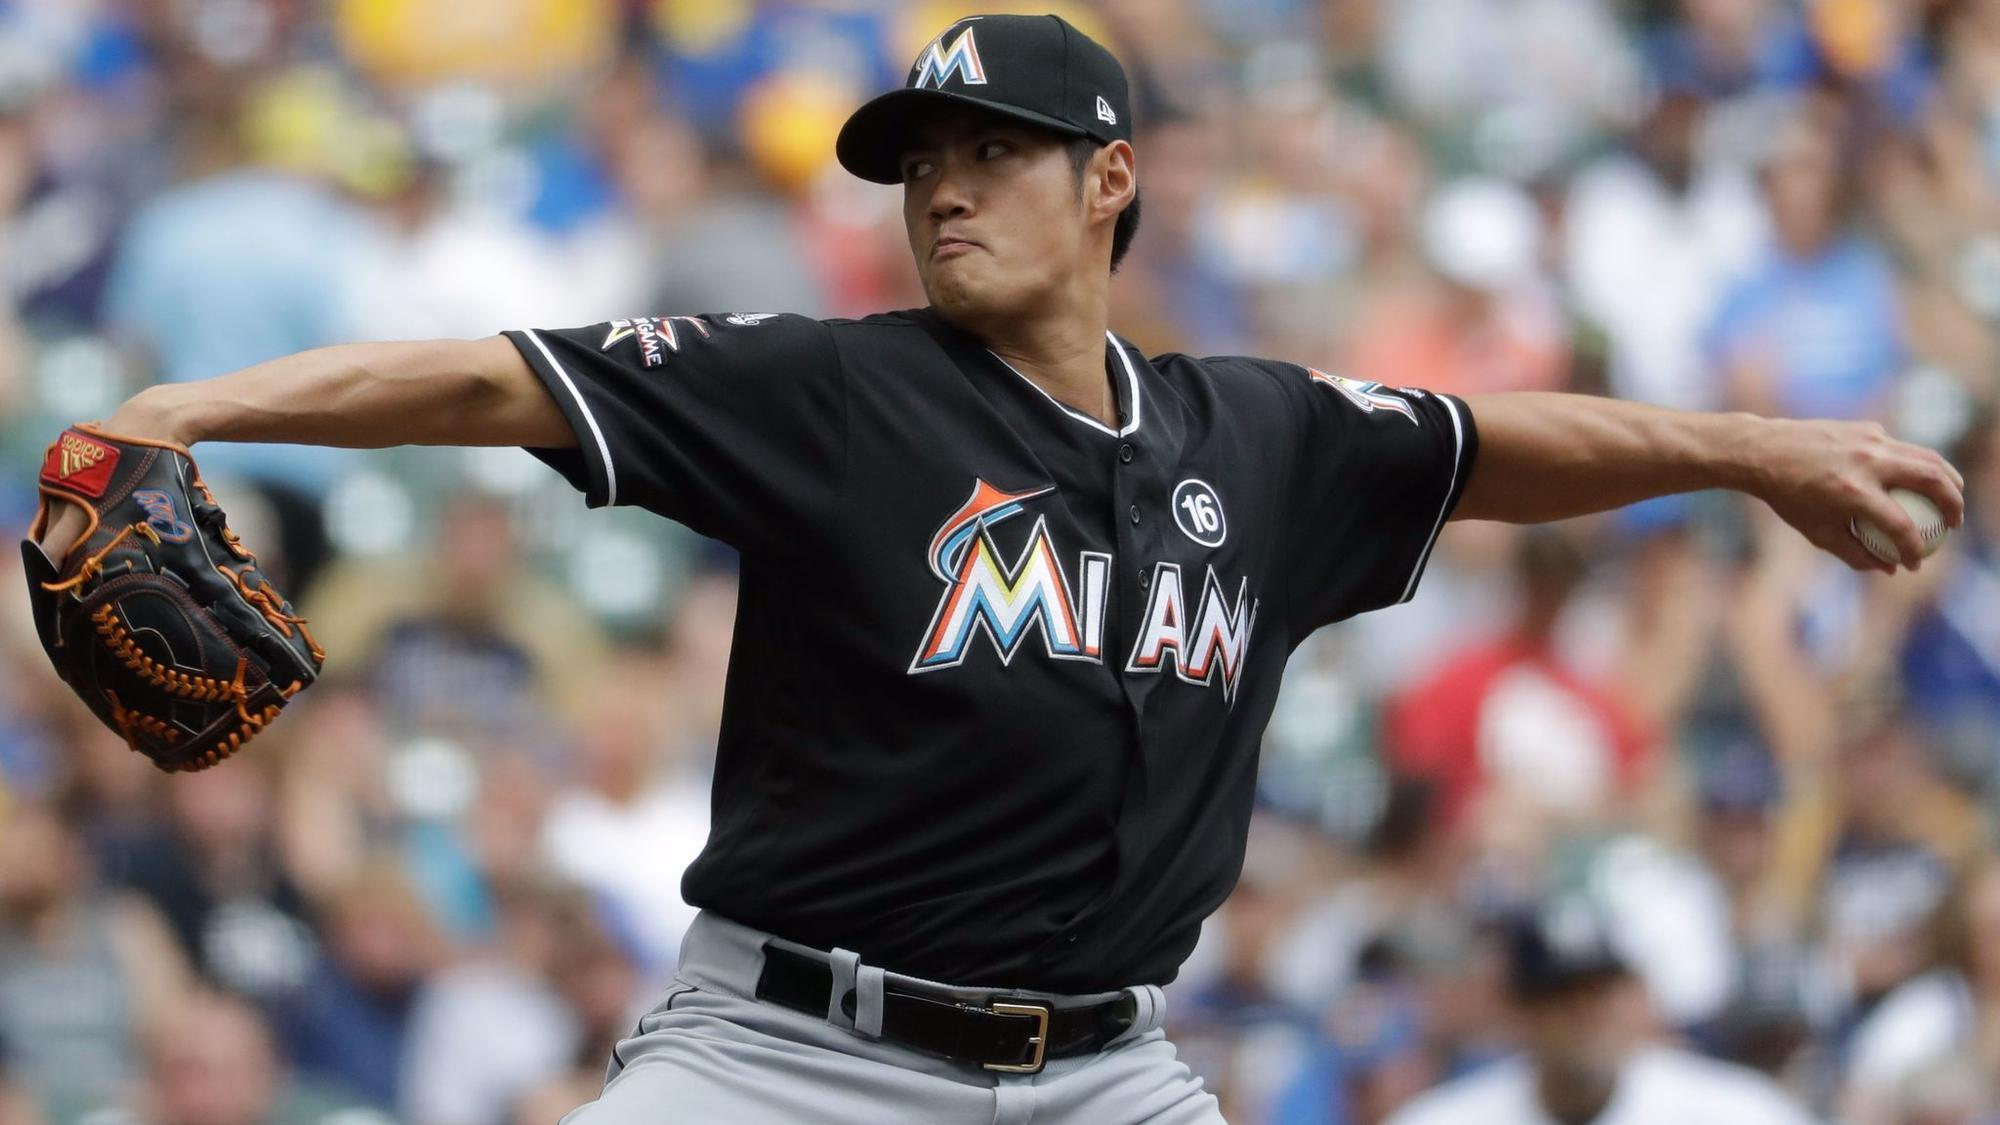 Fl-sp-wei-yin-chen-marlins-opt-out-20171105